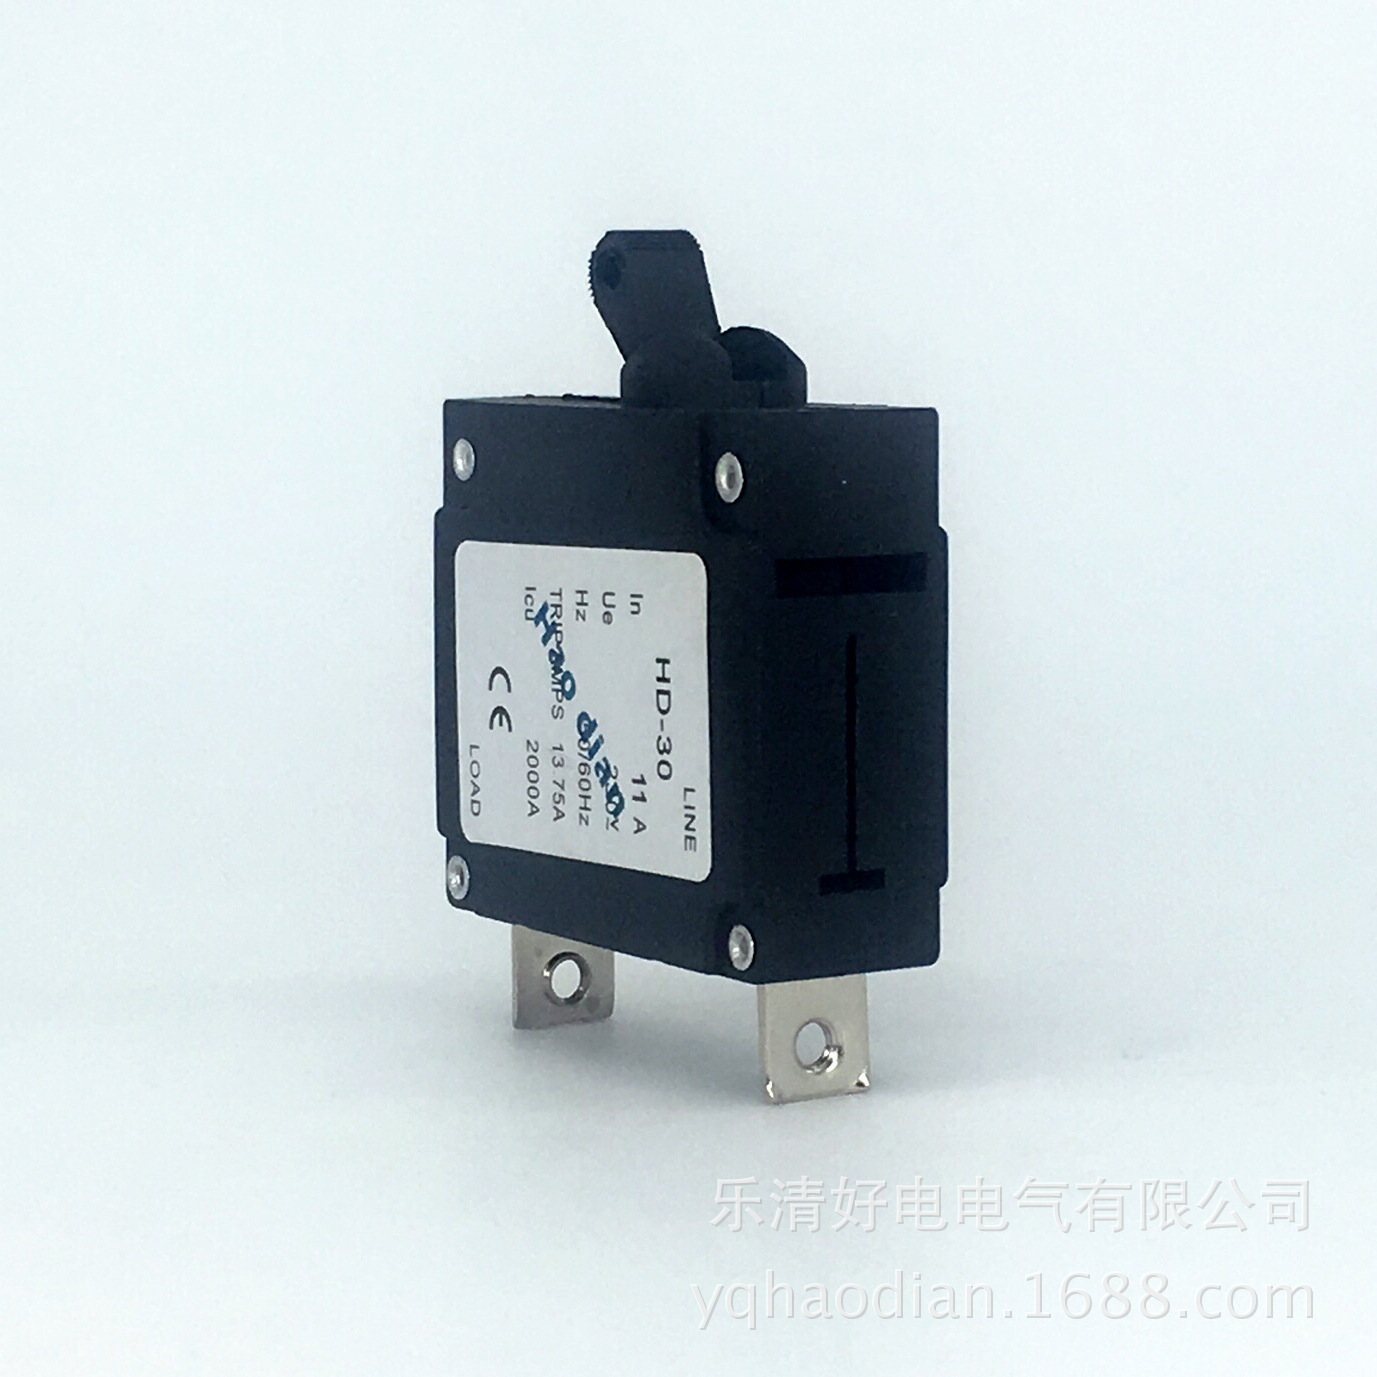 цена на 10pcs Hydraulic electromagnetic circuit breaker hd-30 1P/11A device protects the over-magnetic circuit breaker